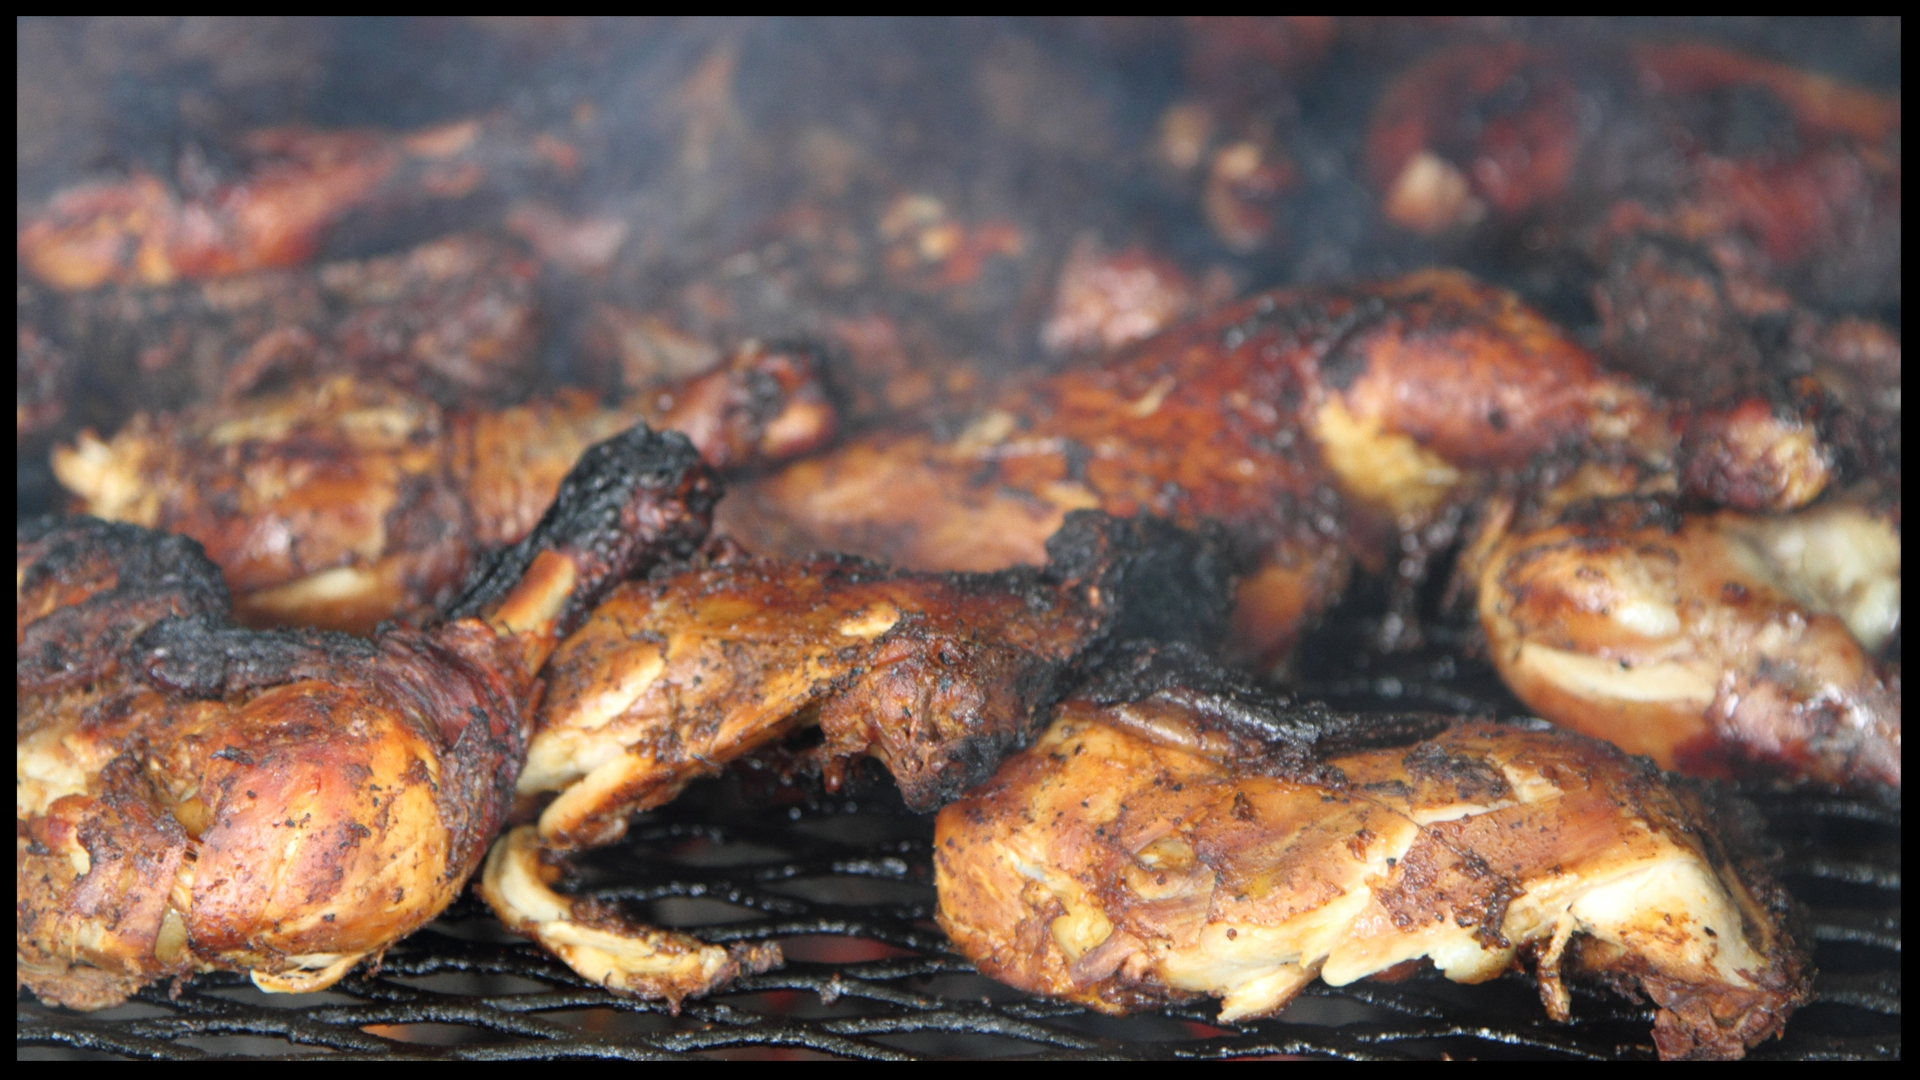 Jamaican Jerk Festival - When: Sunday, July 23 from Noon - 8PMWhere: Roy Wilkins Park, QueensClick here for event ticketsClick here for event websitePhoto: Jamaican Jerk Festival NY